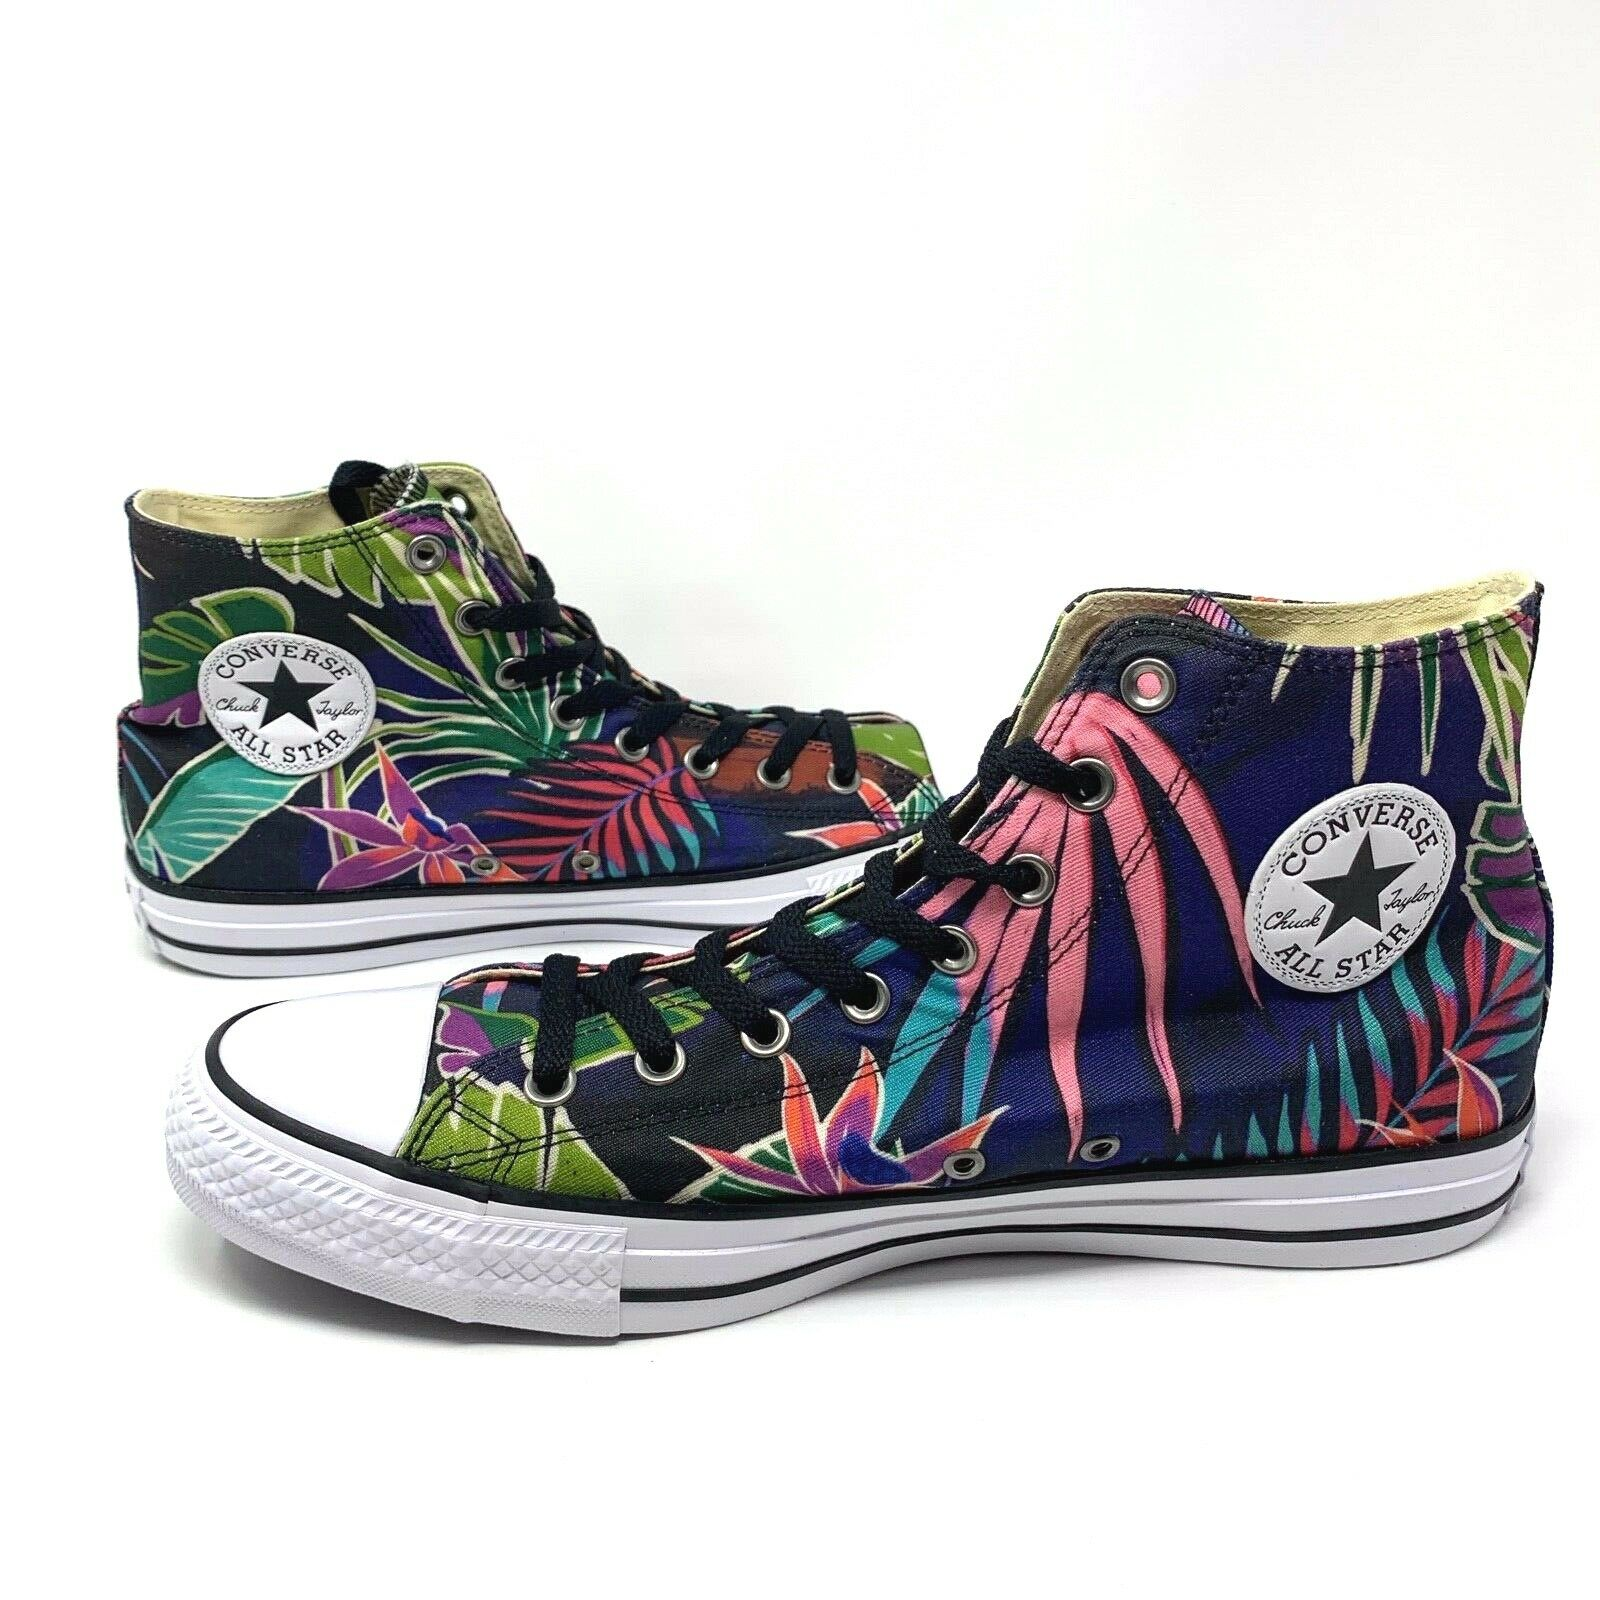 Converse Chuck Taylor All Star Palm Tree Floral Fuchsia Glow Size 11 155393c New